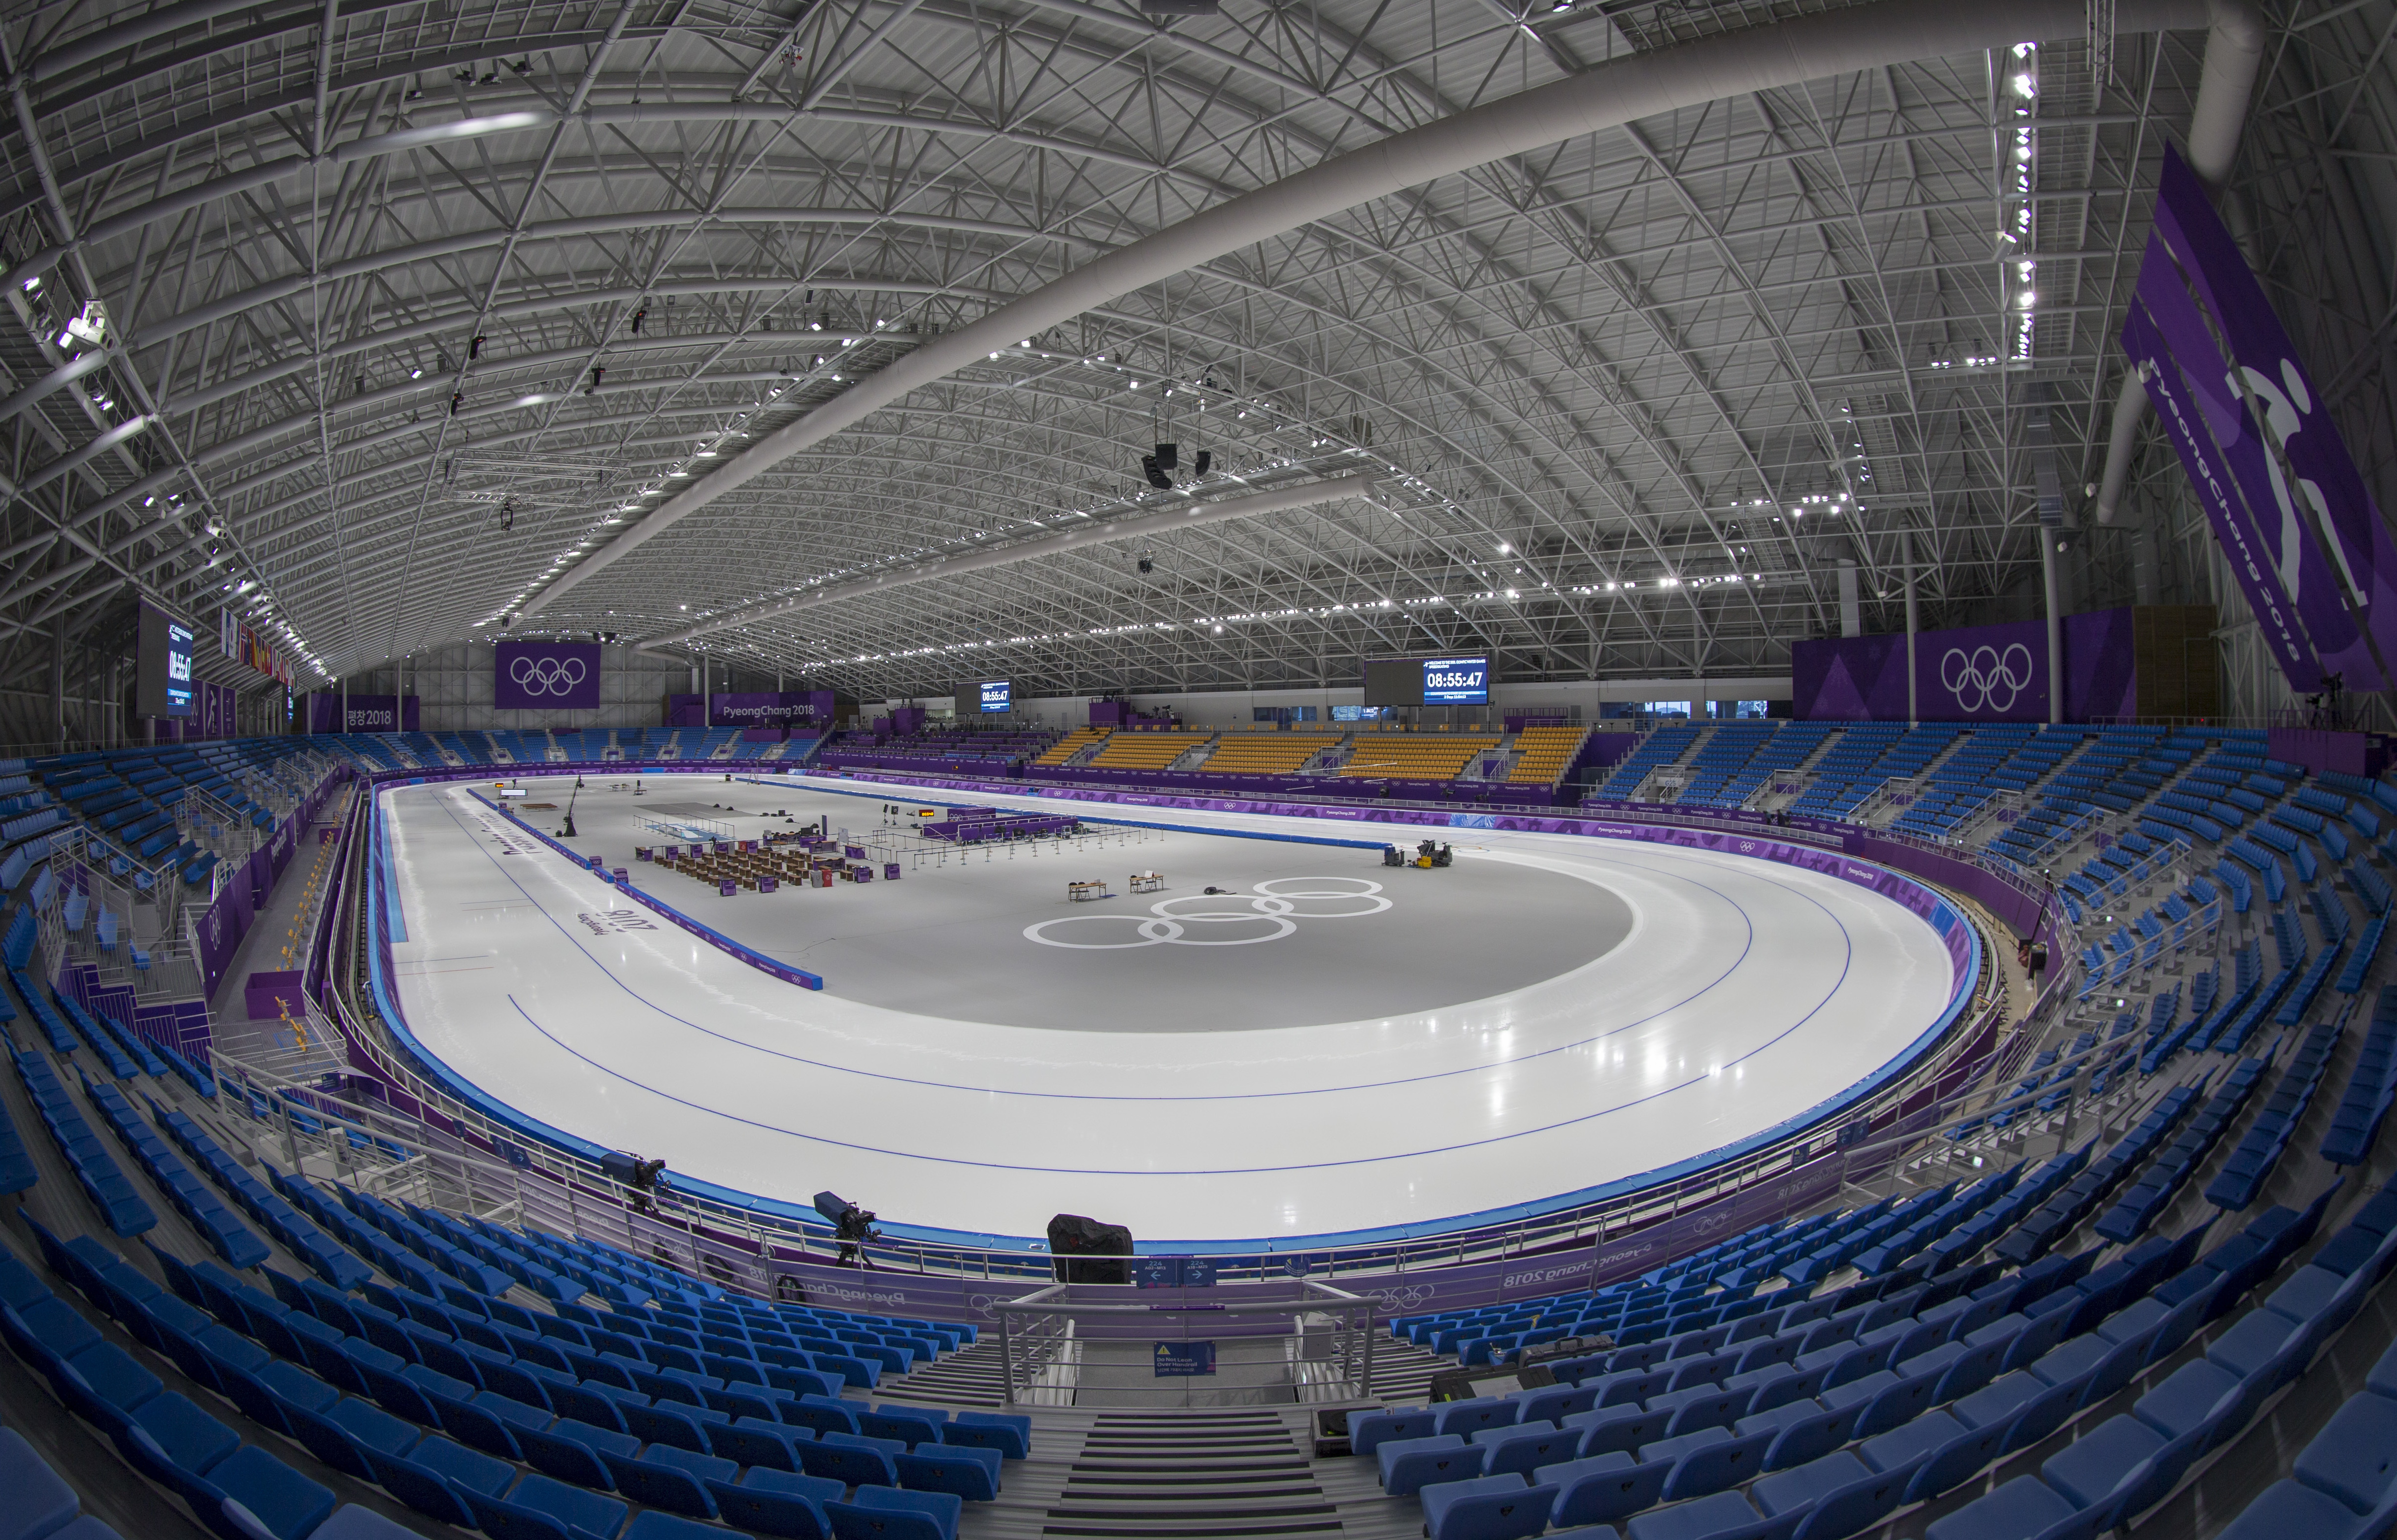 The Gangneung Oval, the venue for speedskating, is prepared before competition begins.